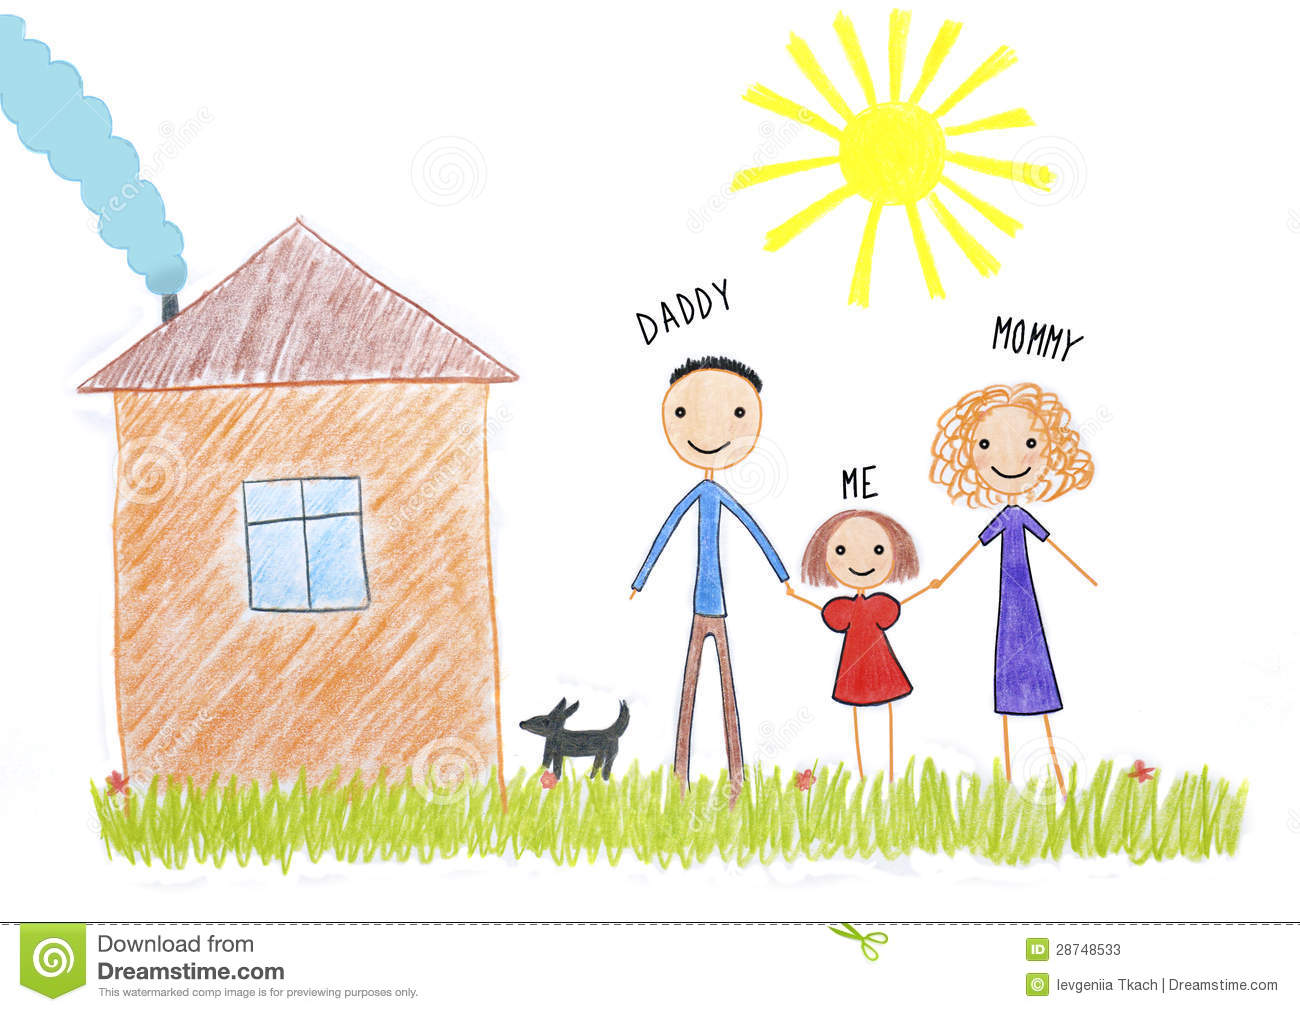 kids drawing happy family near their house kids drawings pinterest drawing competition kid drawings and drawings